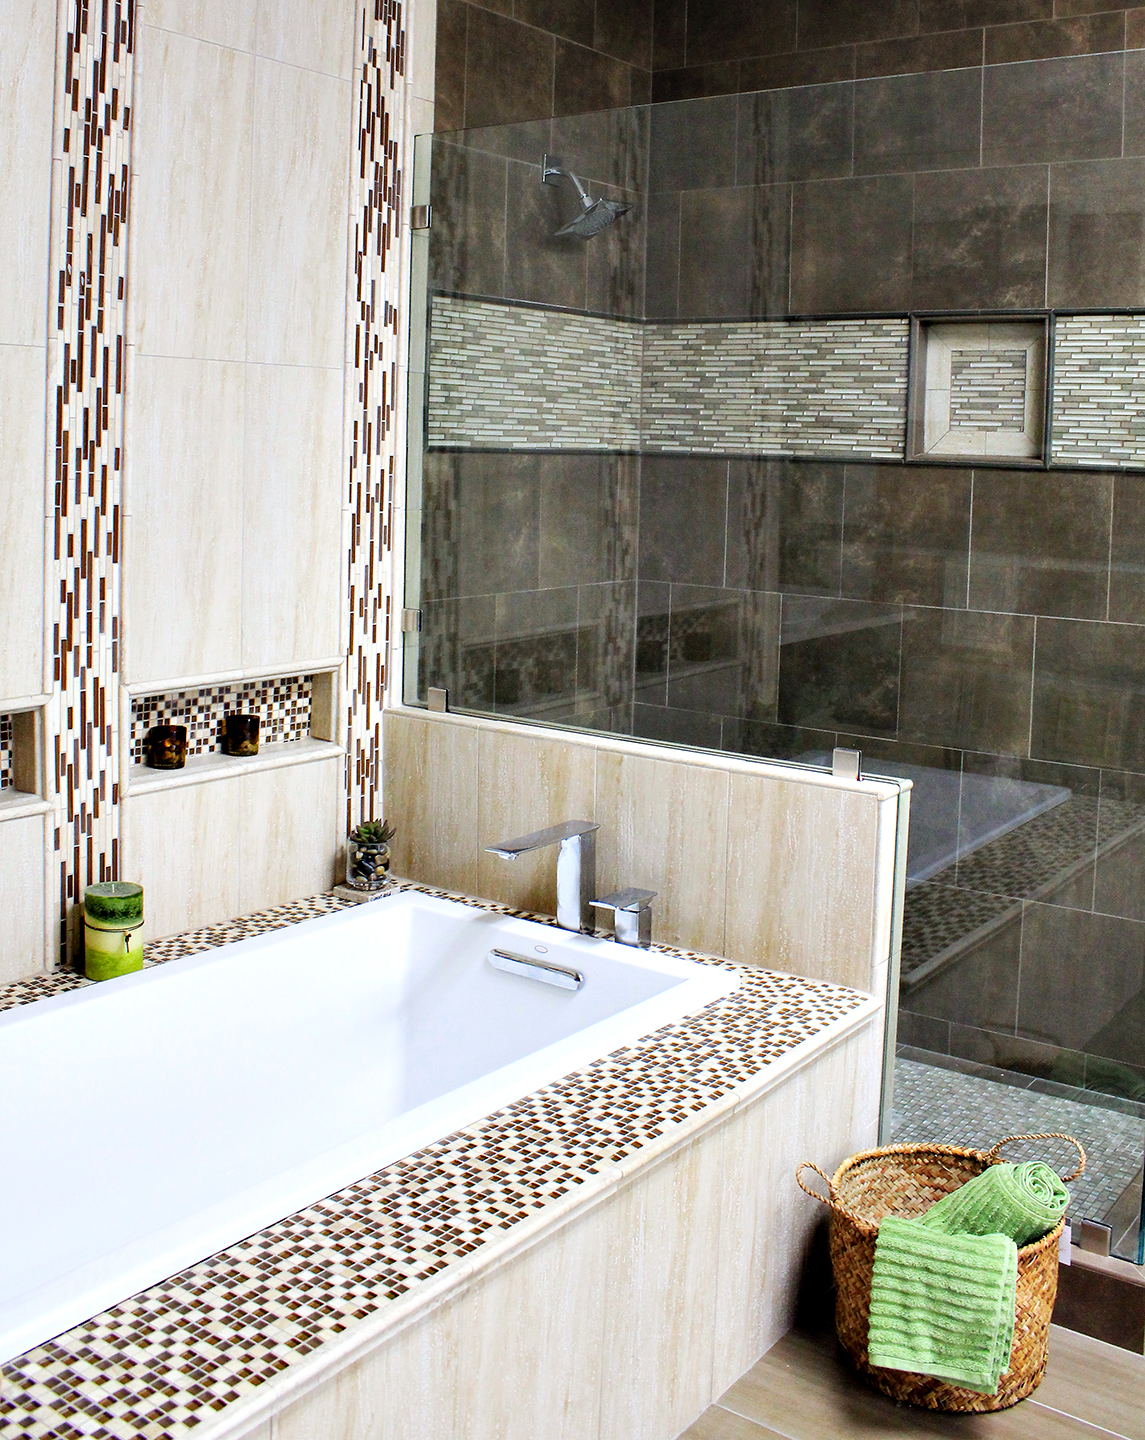 Envision Design San Diego Showroom - Our Favorite Resort Style Bathroom Model | Envision Design